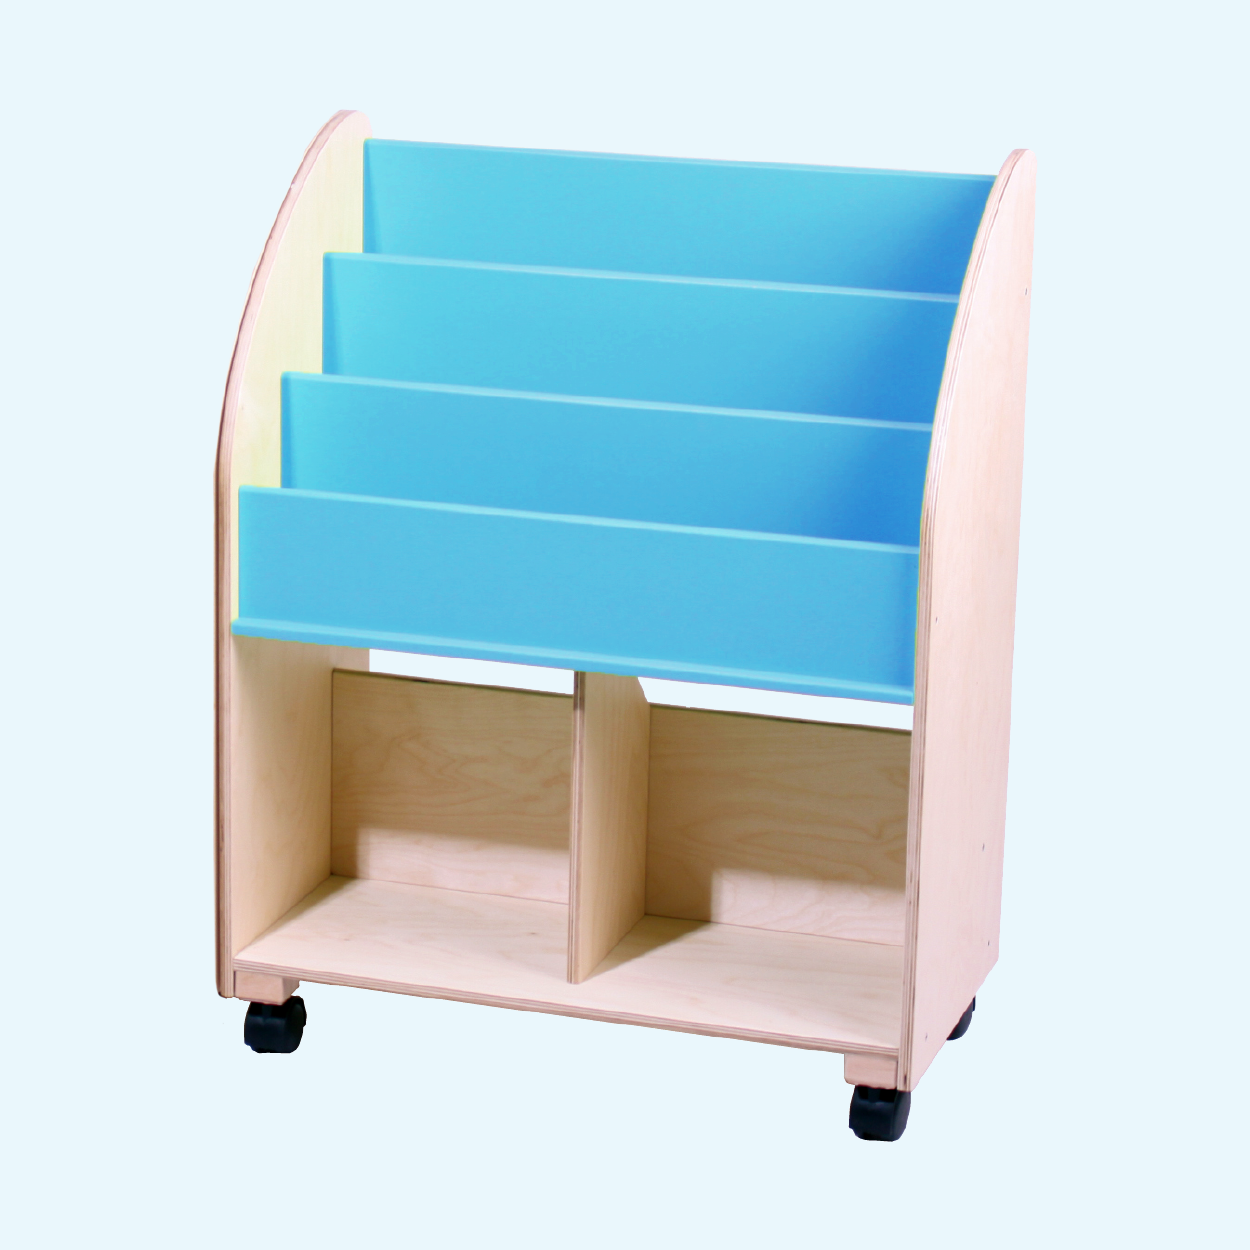 Wooden Bookshelf - Cool Blue